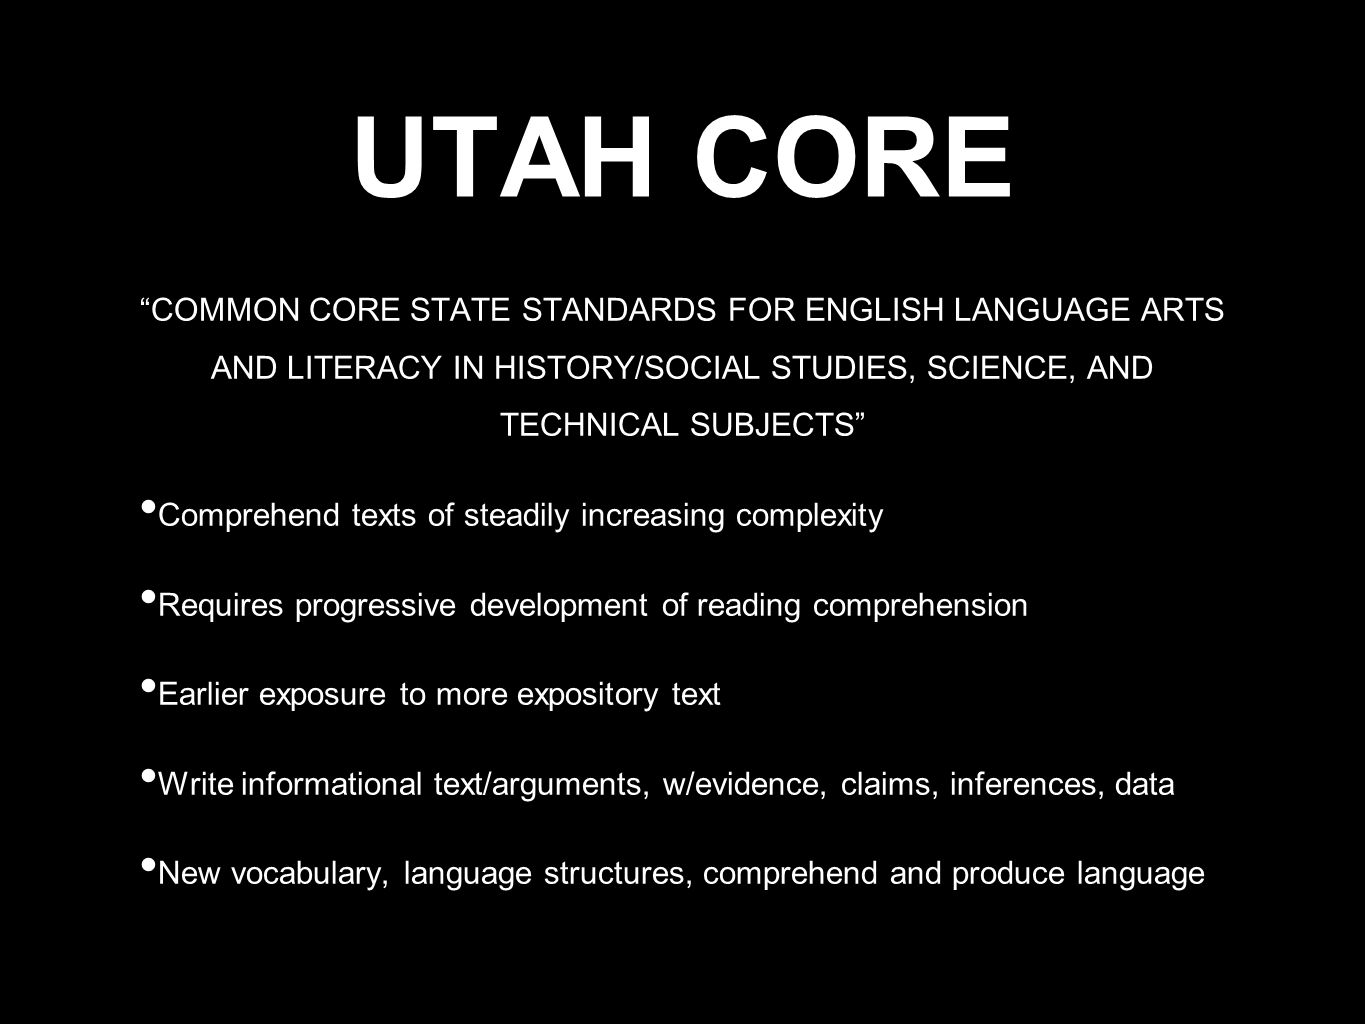 UTAH CORE COMMON CORE STATE STANDARDS FOR ENGLISH LANGUAGE ARTS AND LITERACY IN HISTORY/SOCIAL STUDIES, SCIENCE, AND TECHNICAL SUBJECTS Comprehend texts of steadily increasing complexity Requires progressive development of reading comprehension Earlier exposure to more expository text Write informational text/arguments, w/evidence, claims, inferences, data New vocabulary, language structures, comprehend and produce language